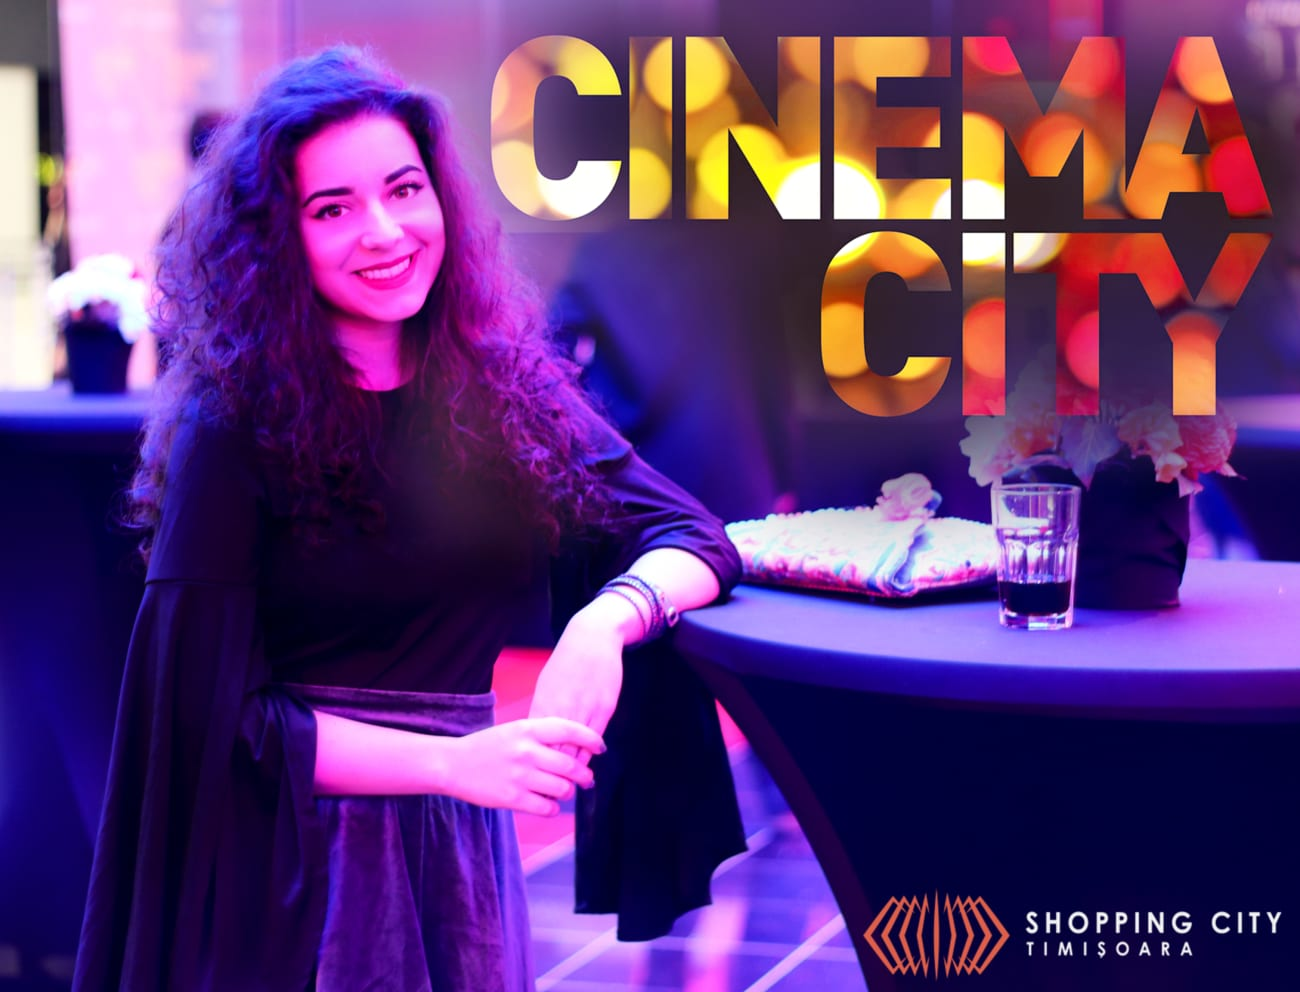 cinemacity timisoara shopping city roxi rose blog lifestyle blogger romania 4dx imax 3d 2d multiplex europe carla's dream nepi